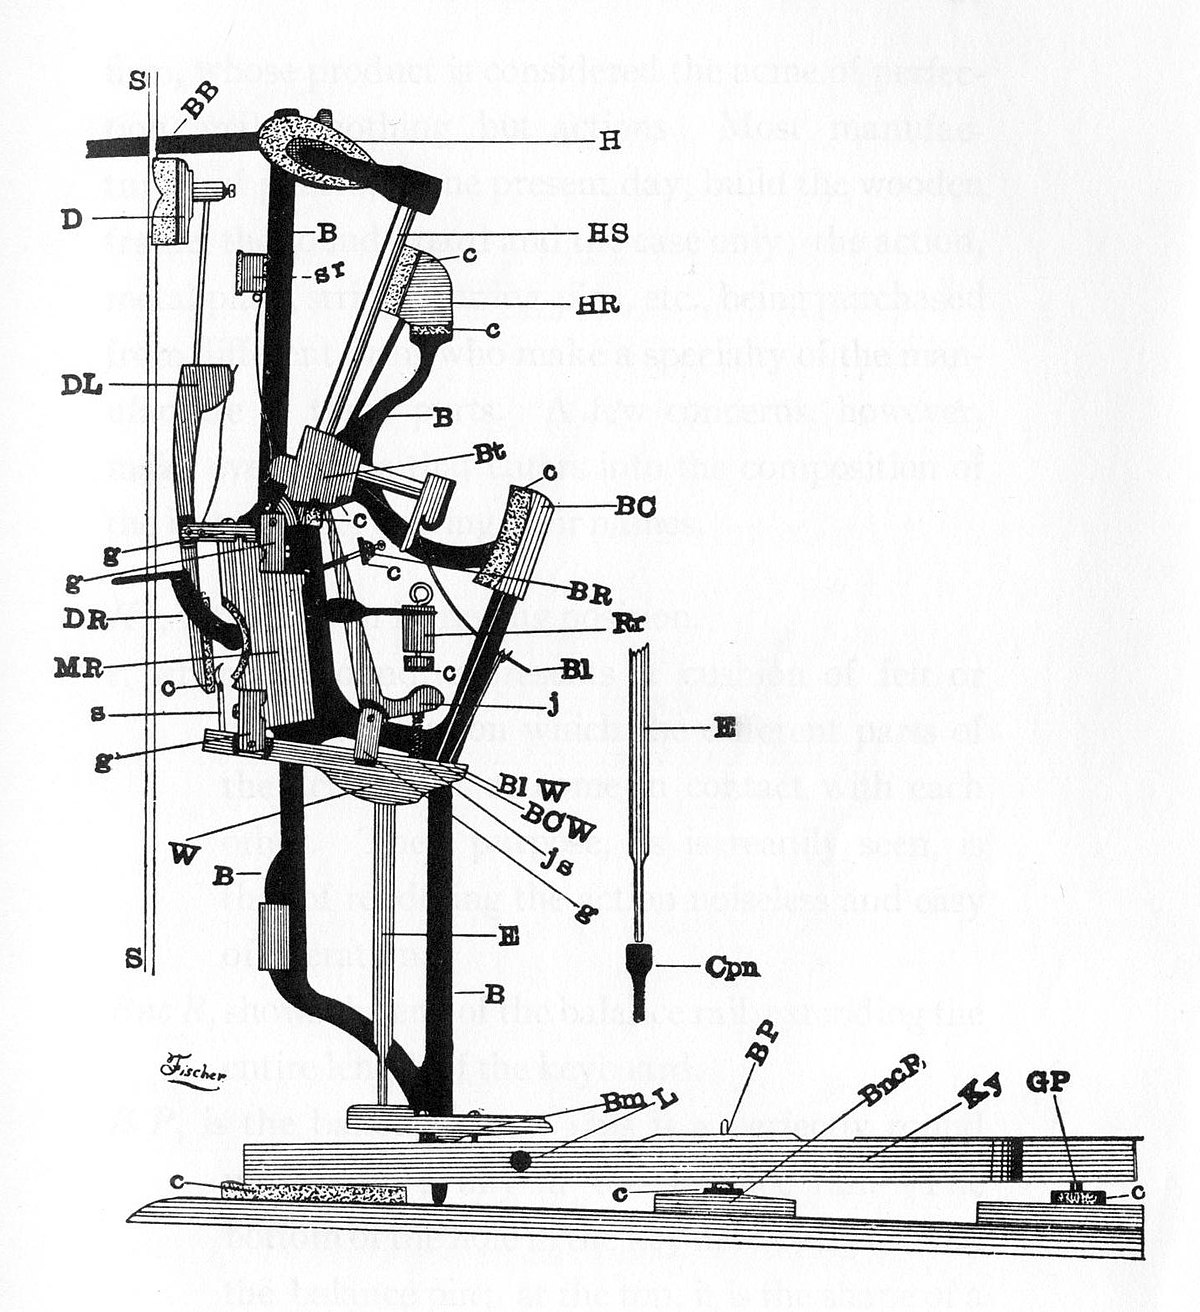 Gutenberg printing press labeled diagram